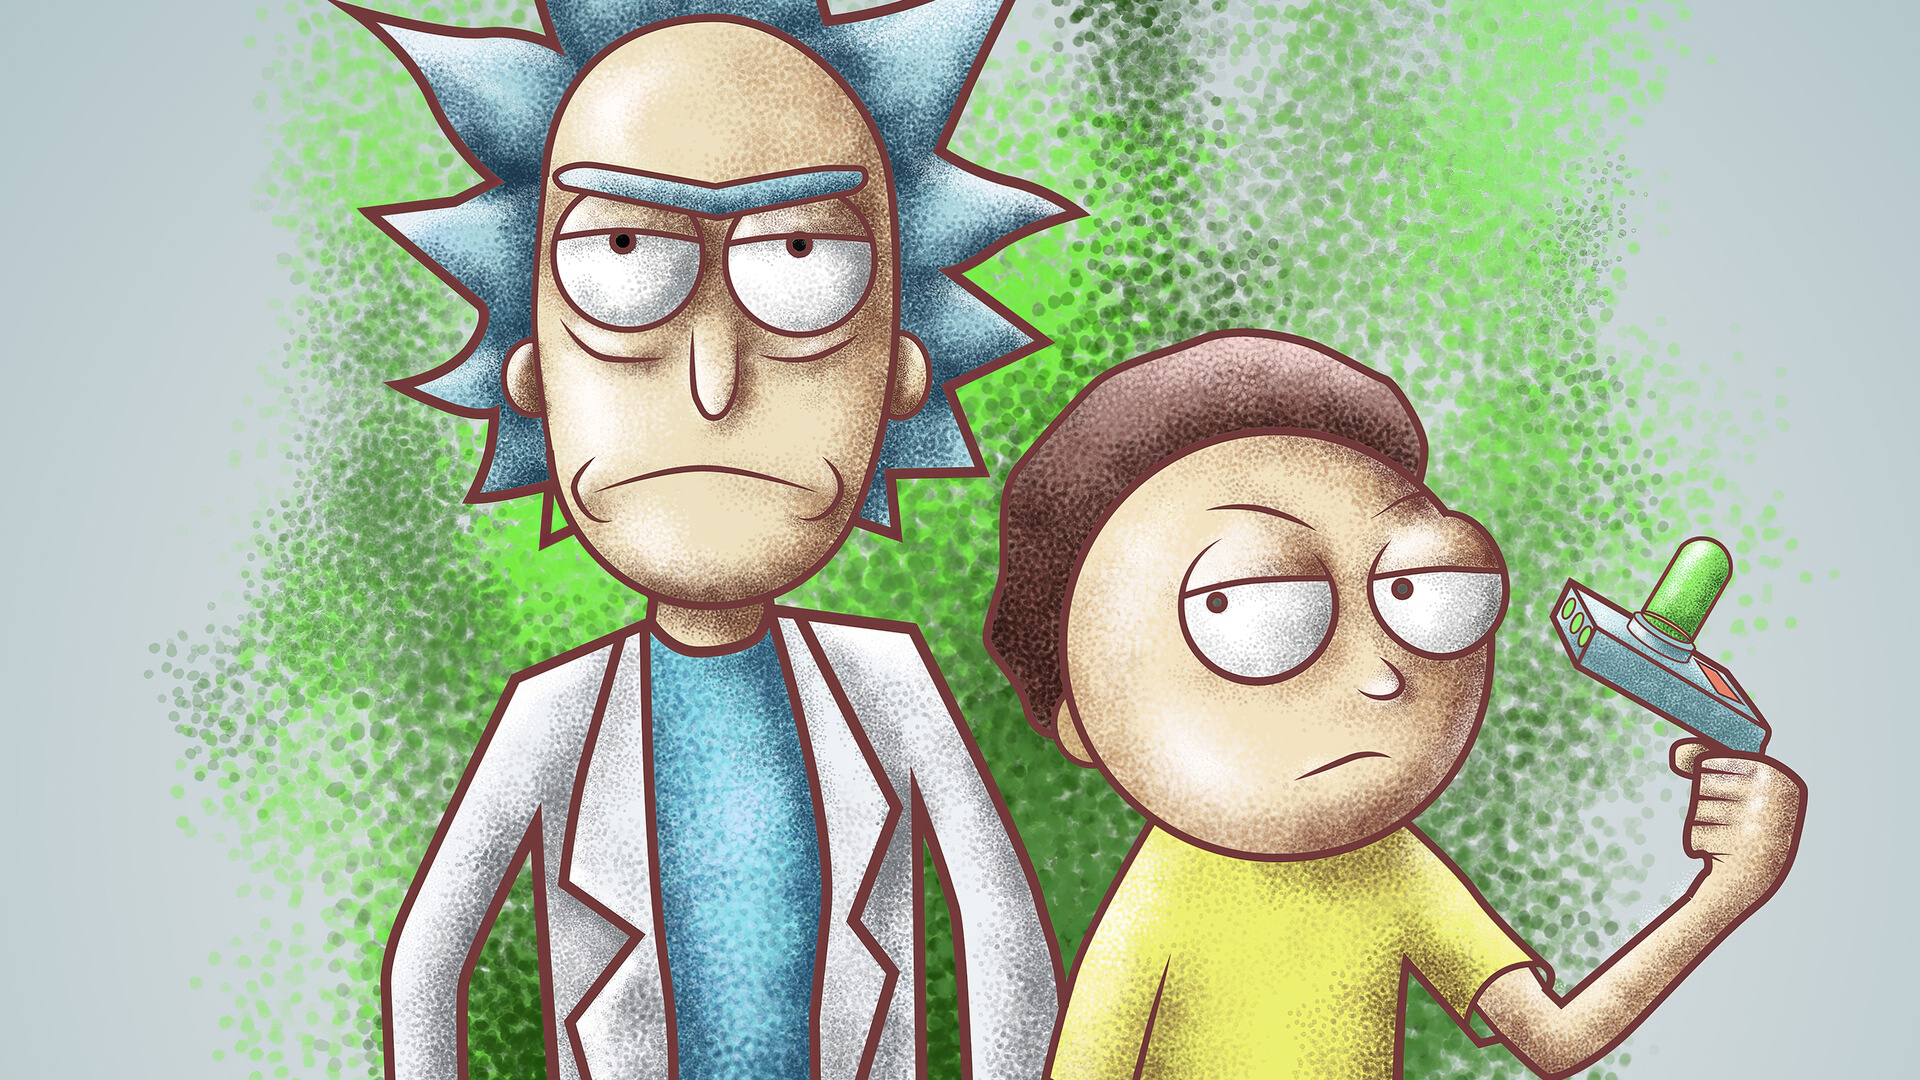 Rick And Morty Art free background